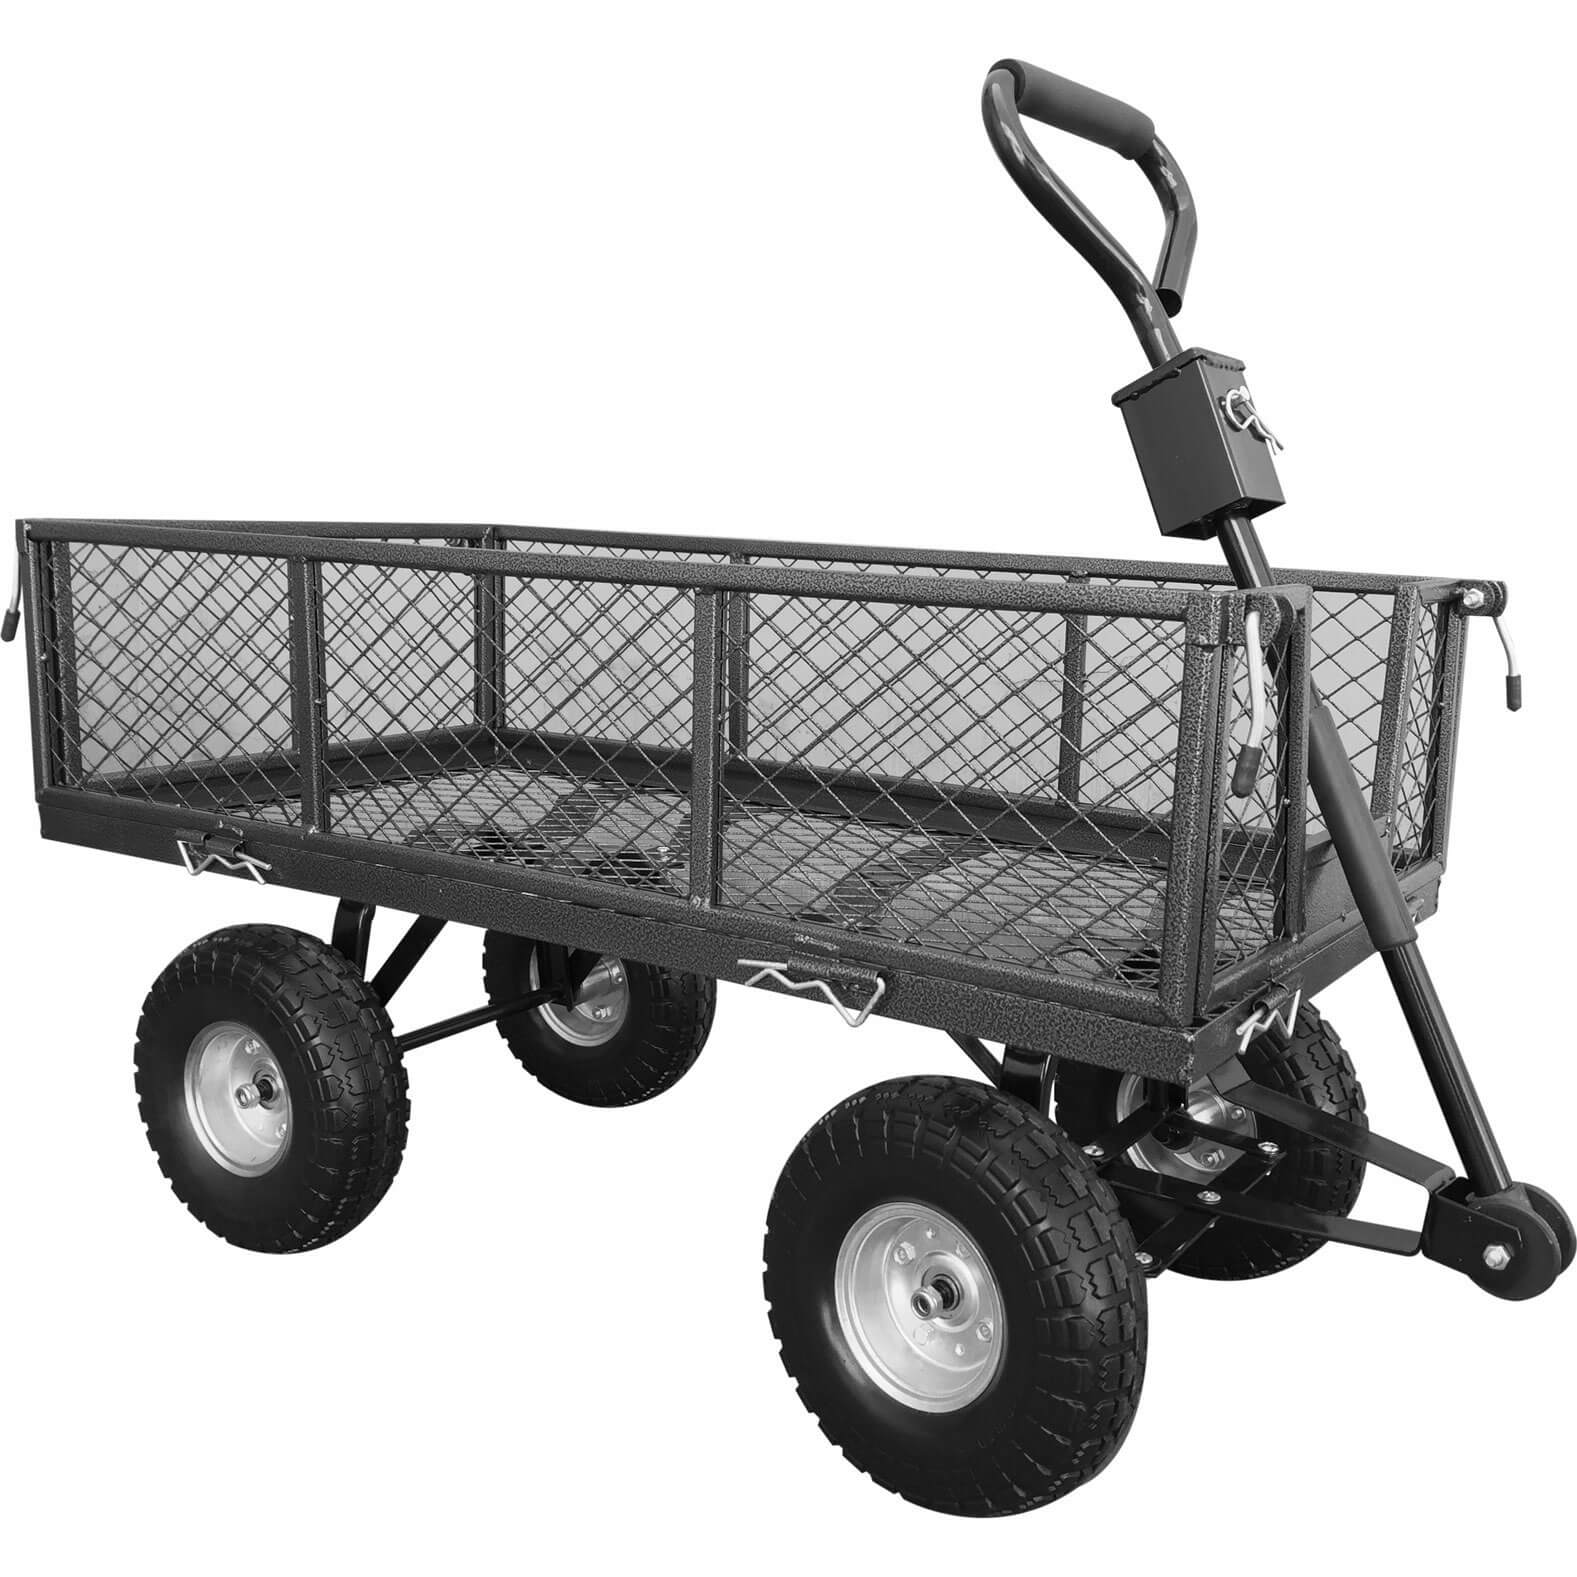 Handy Small Steel Garden Trolley with Punctureless Wheels 200kg Capacity